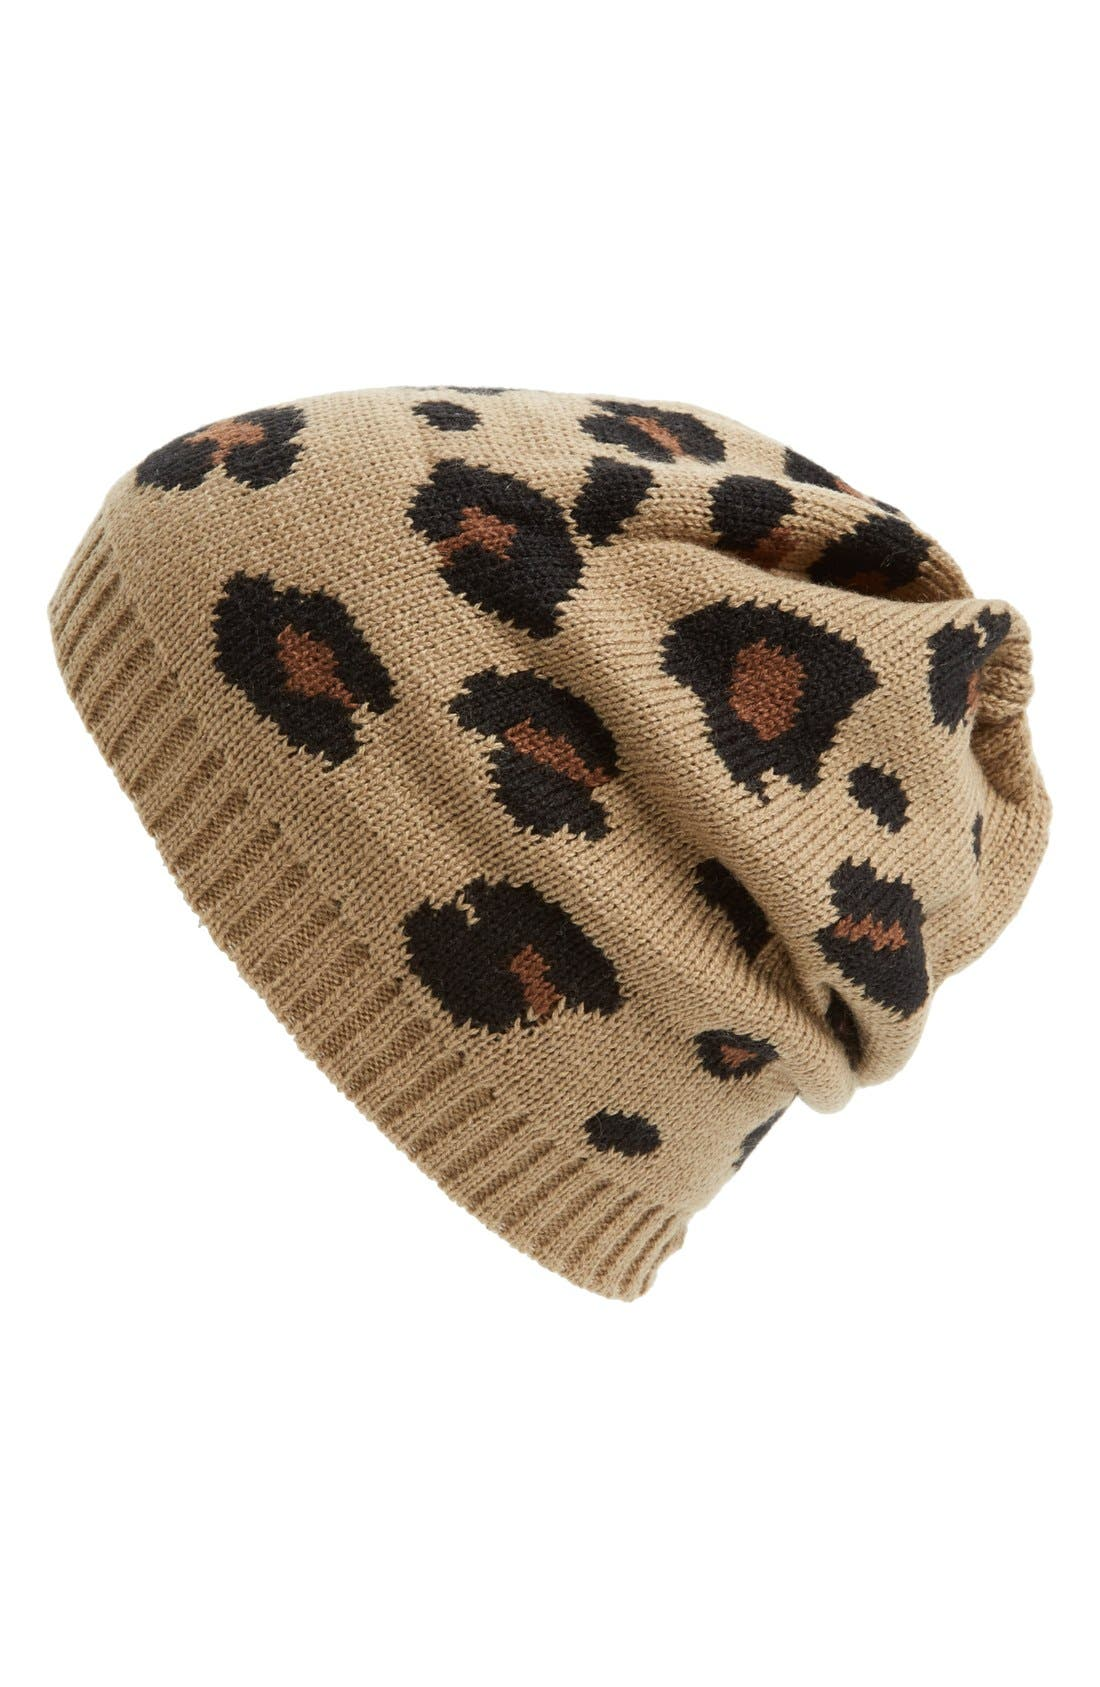 Alternate Image 1 Selected - Amici Accessories Slouchy Leopard Beanie (Juniors)